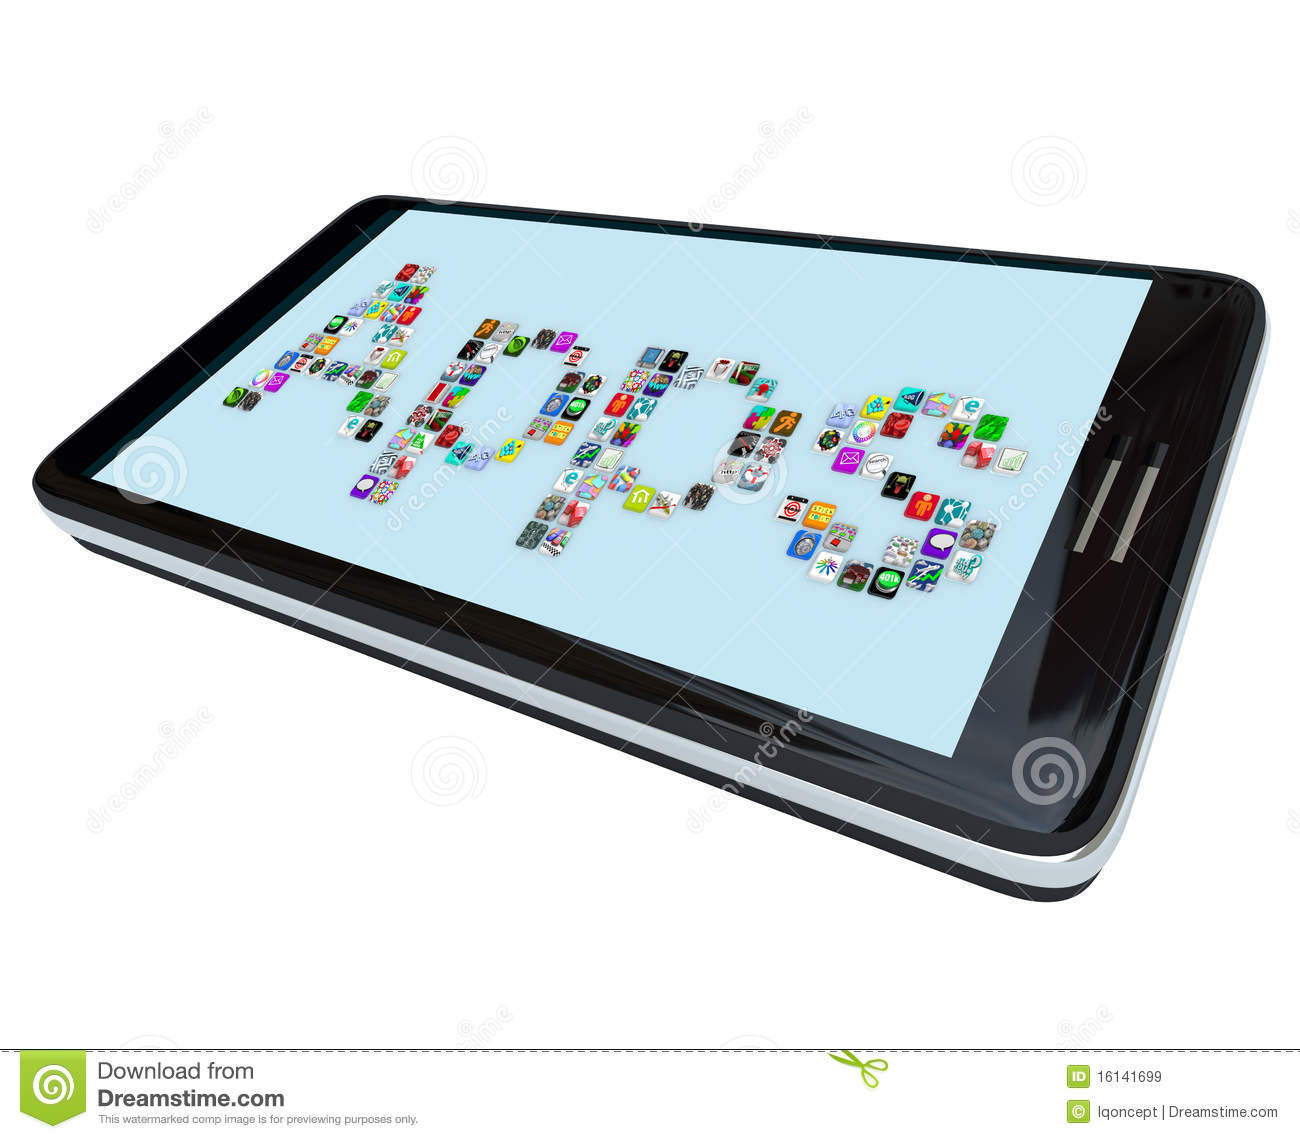 Apps tile icons on smart phone royalty free stock images for Tile planner app